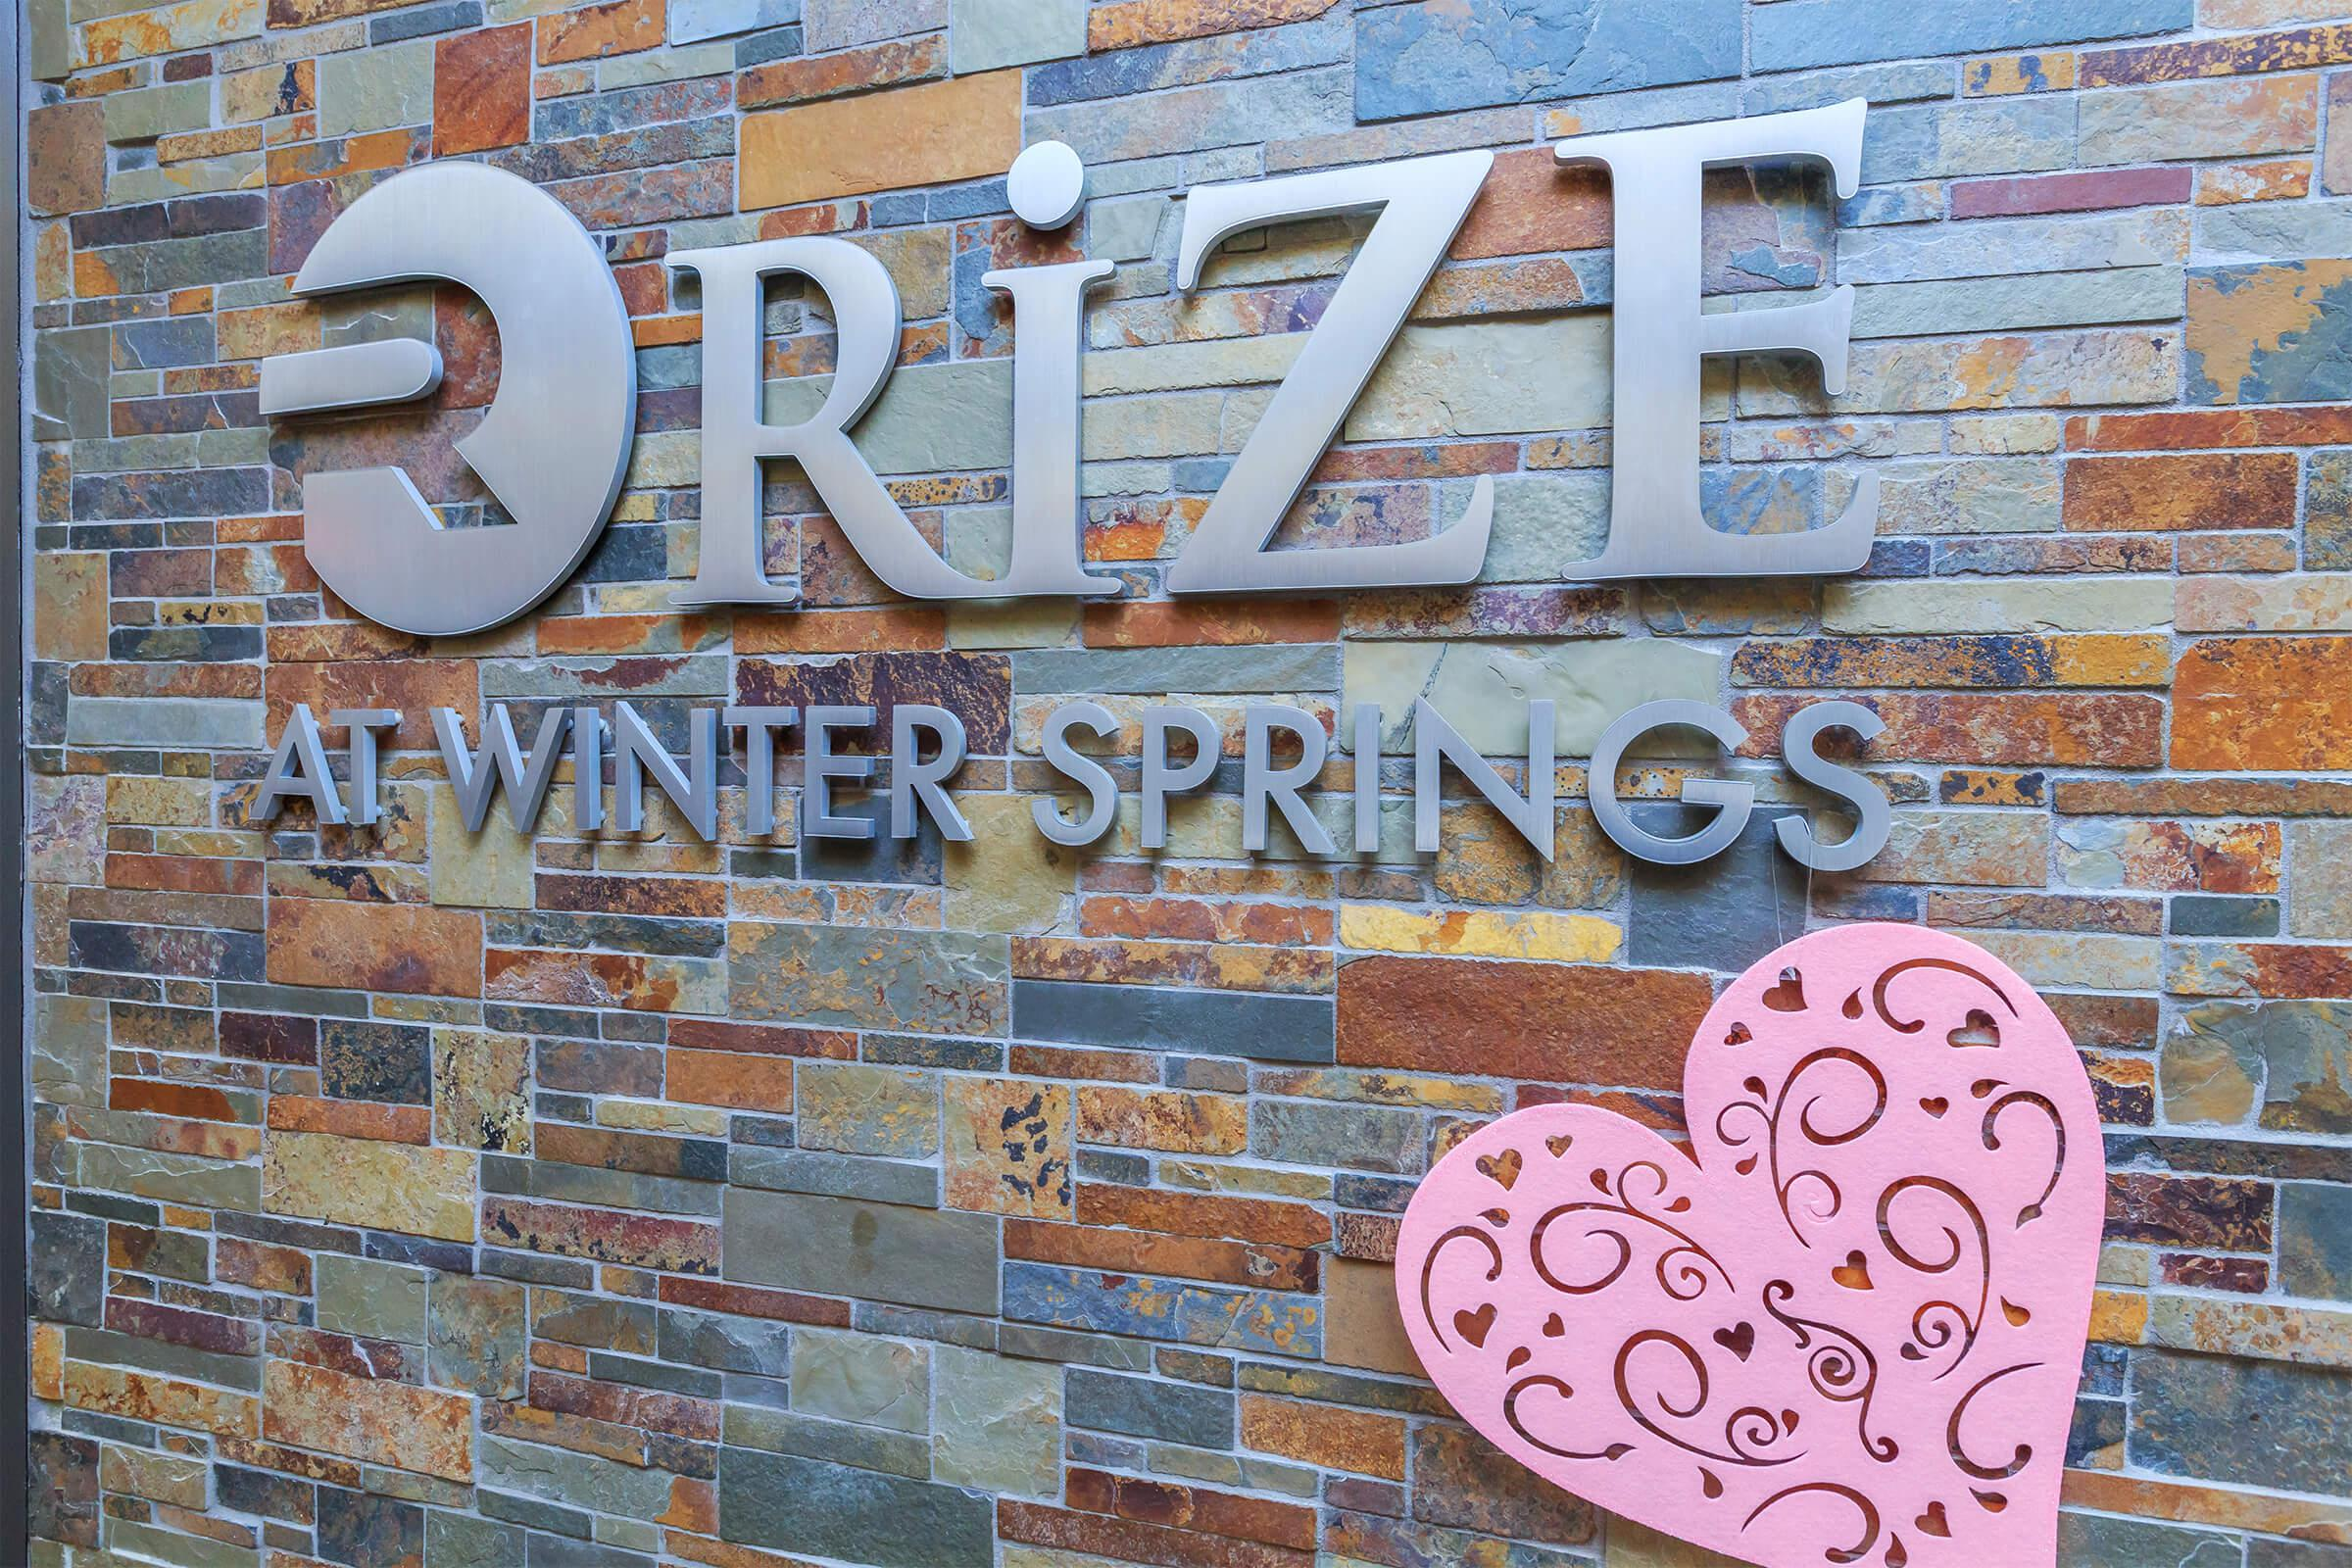 Building at RiZE at Winter Springs Apartments in Winter Springs, FL